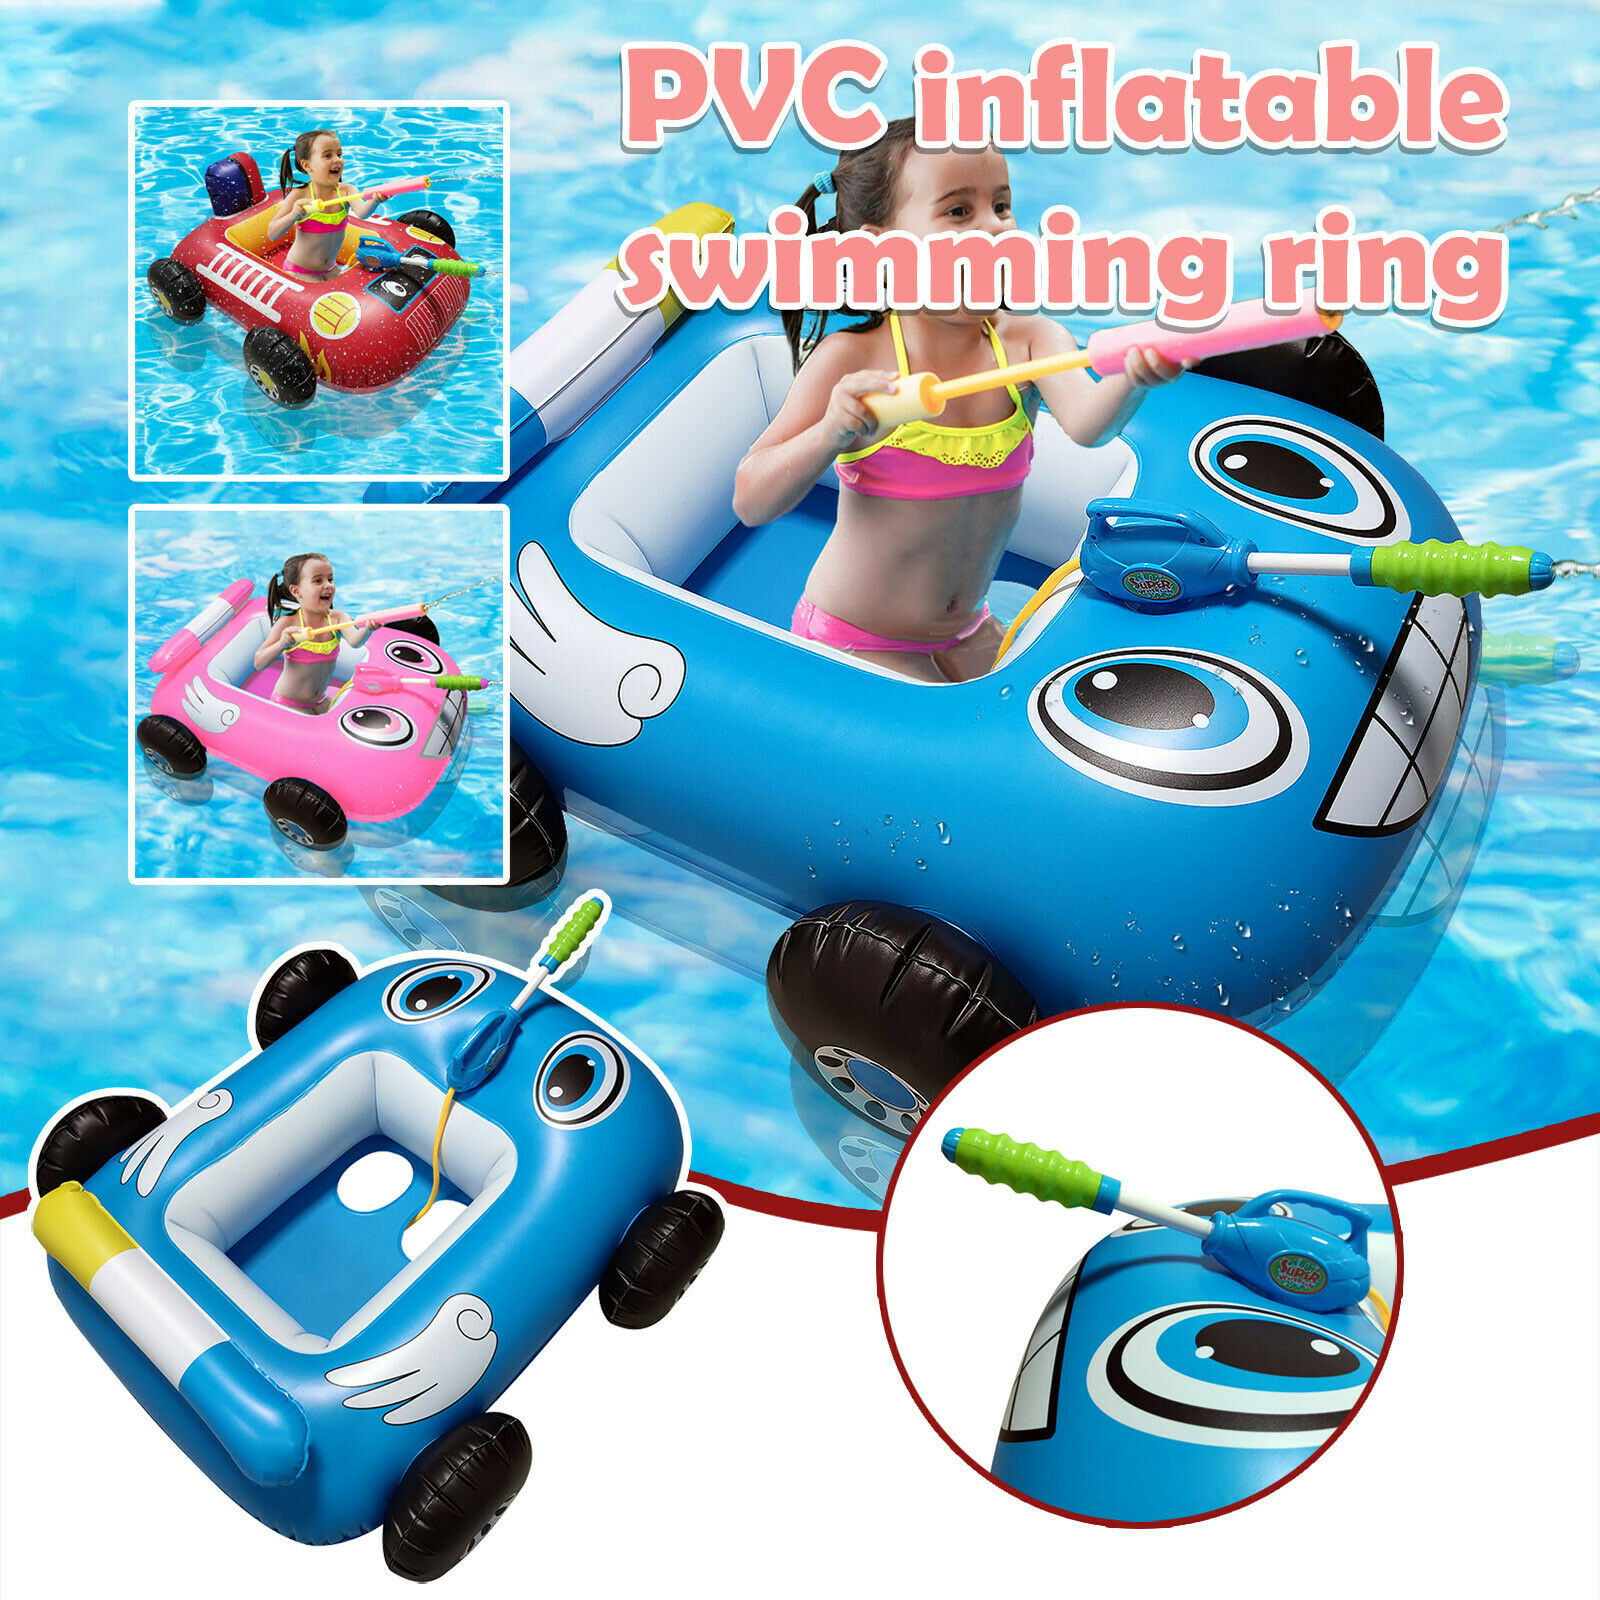 Summer Inflatable Pool For Kids Inflatable Ride-on For Children Aged 3-7 Years